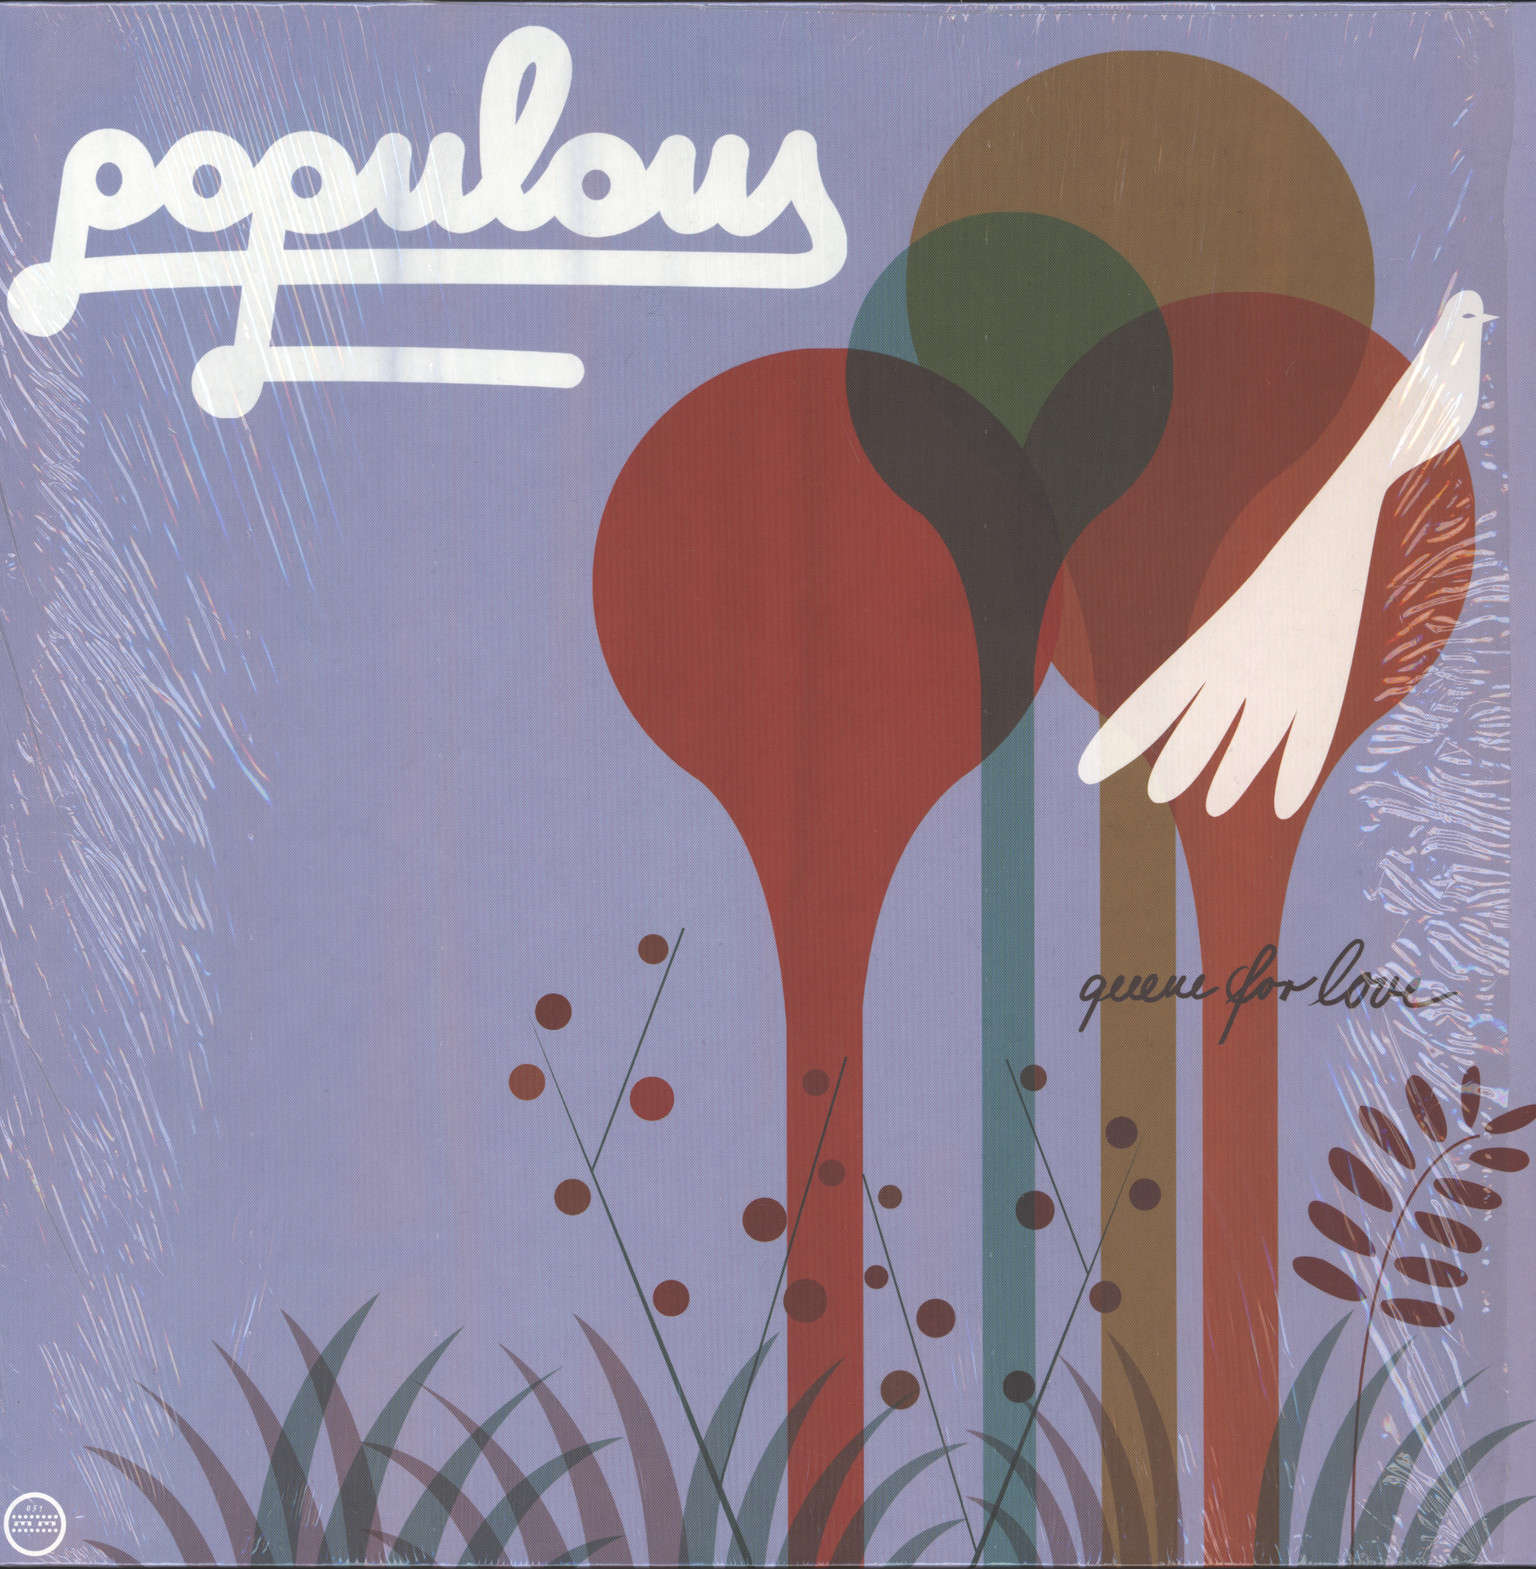 Populous: Queue For Love, LP (Vinyl)